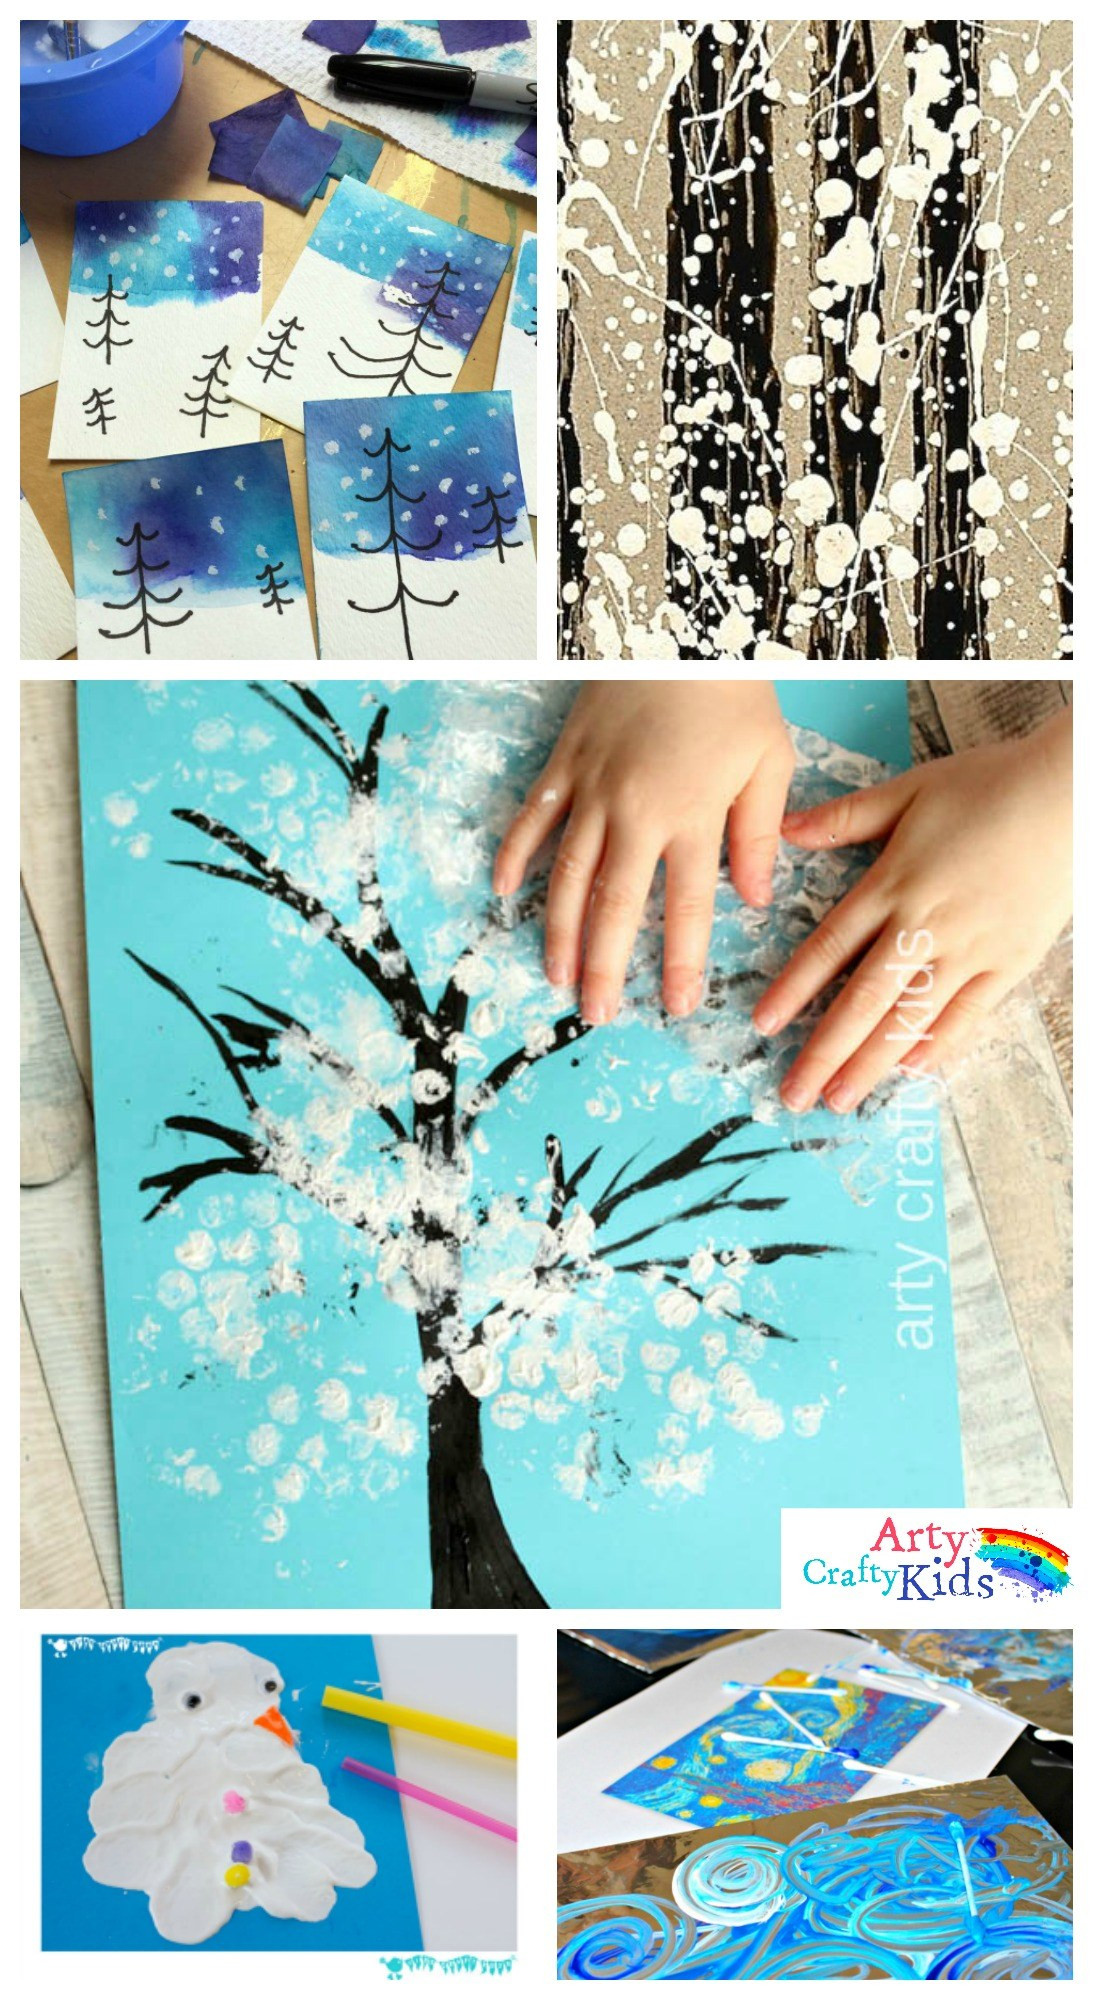 Best ideas about Art Projects For Little Kids . Save or Pin 14 Wonderful Winter Art Projects for Kids Arty Crafty Kids Now.